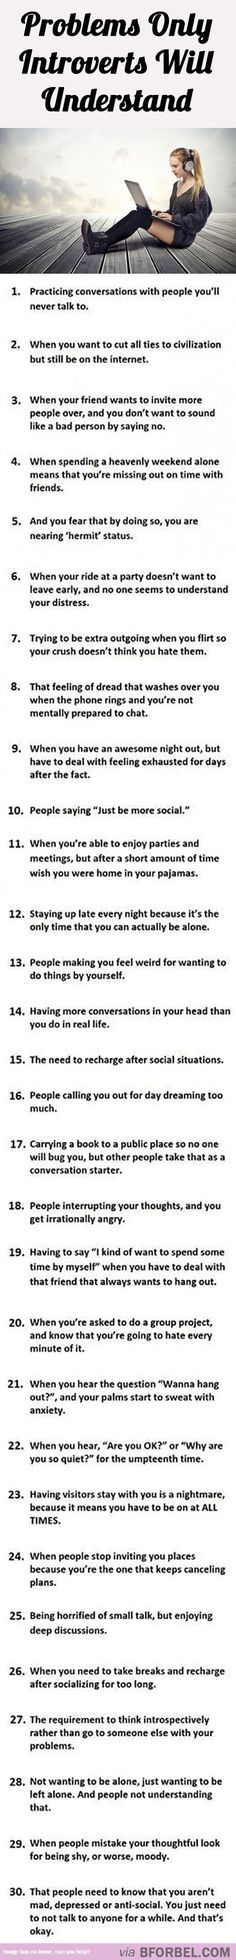 30 Problems Only Introverts Understand…